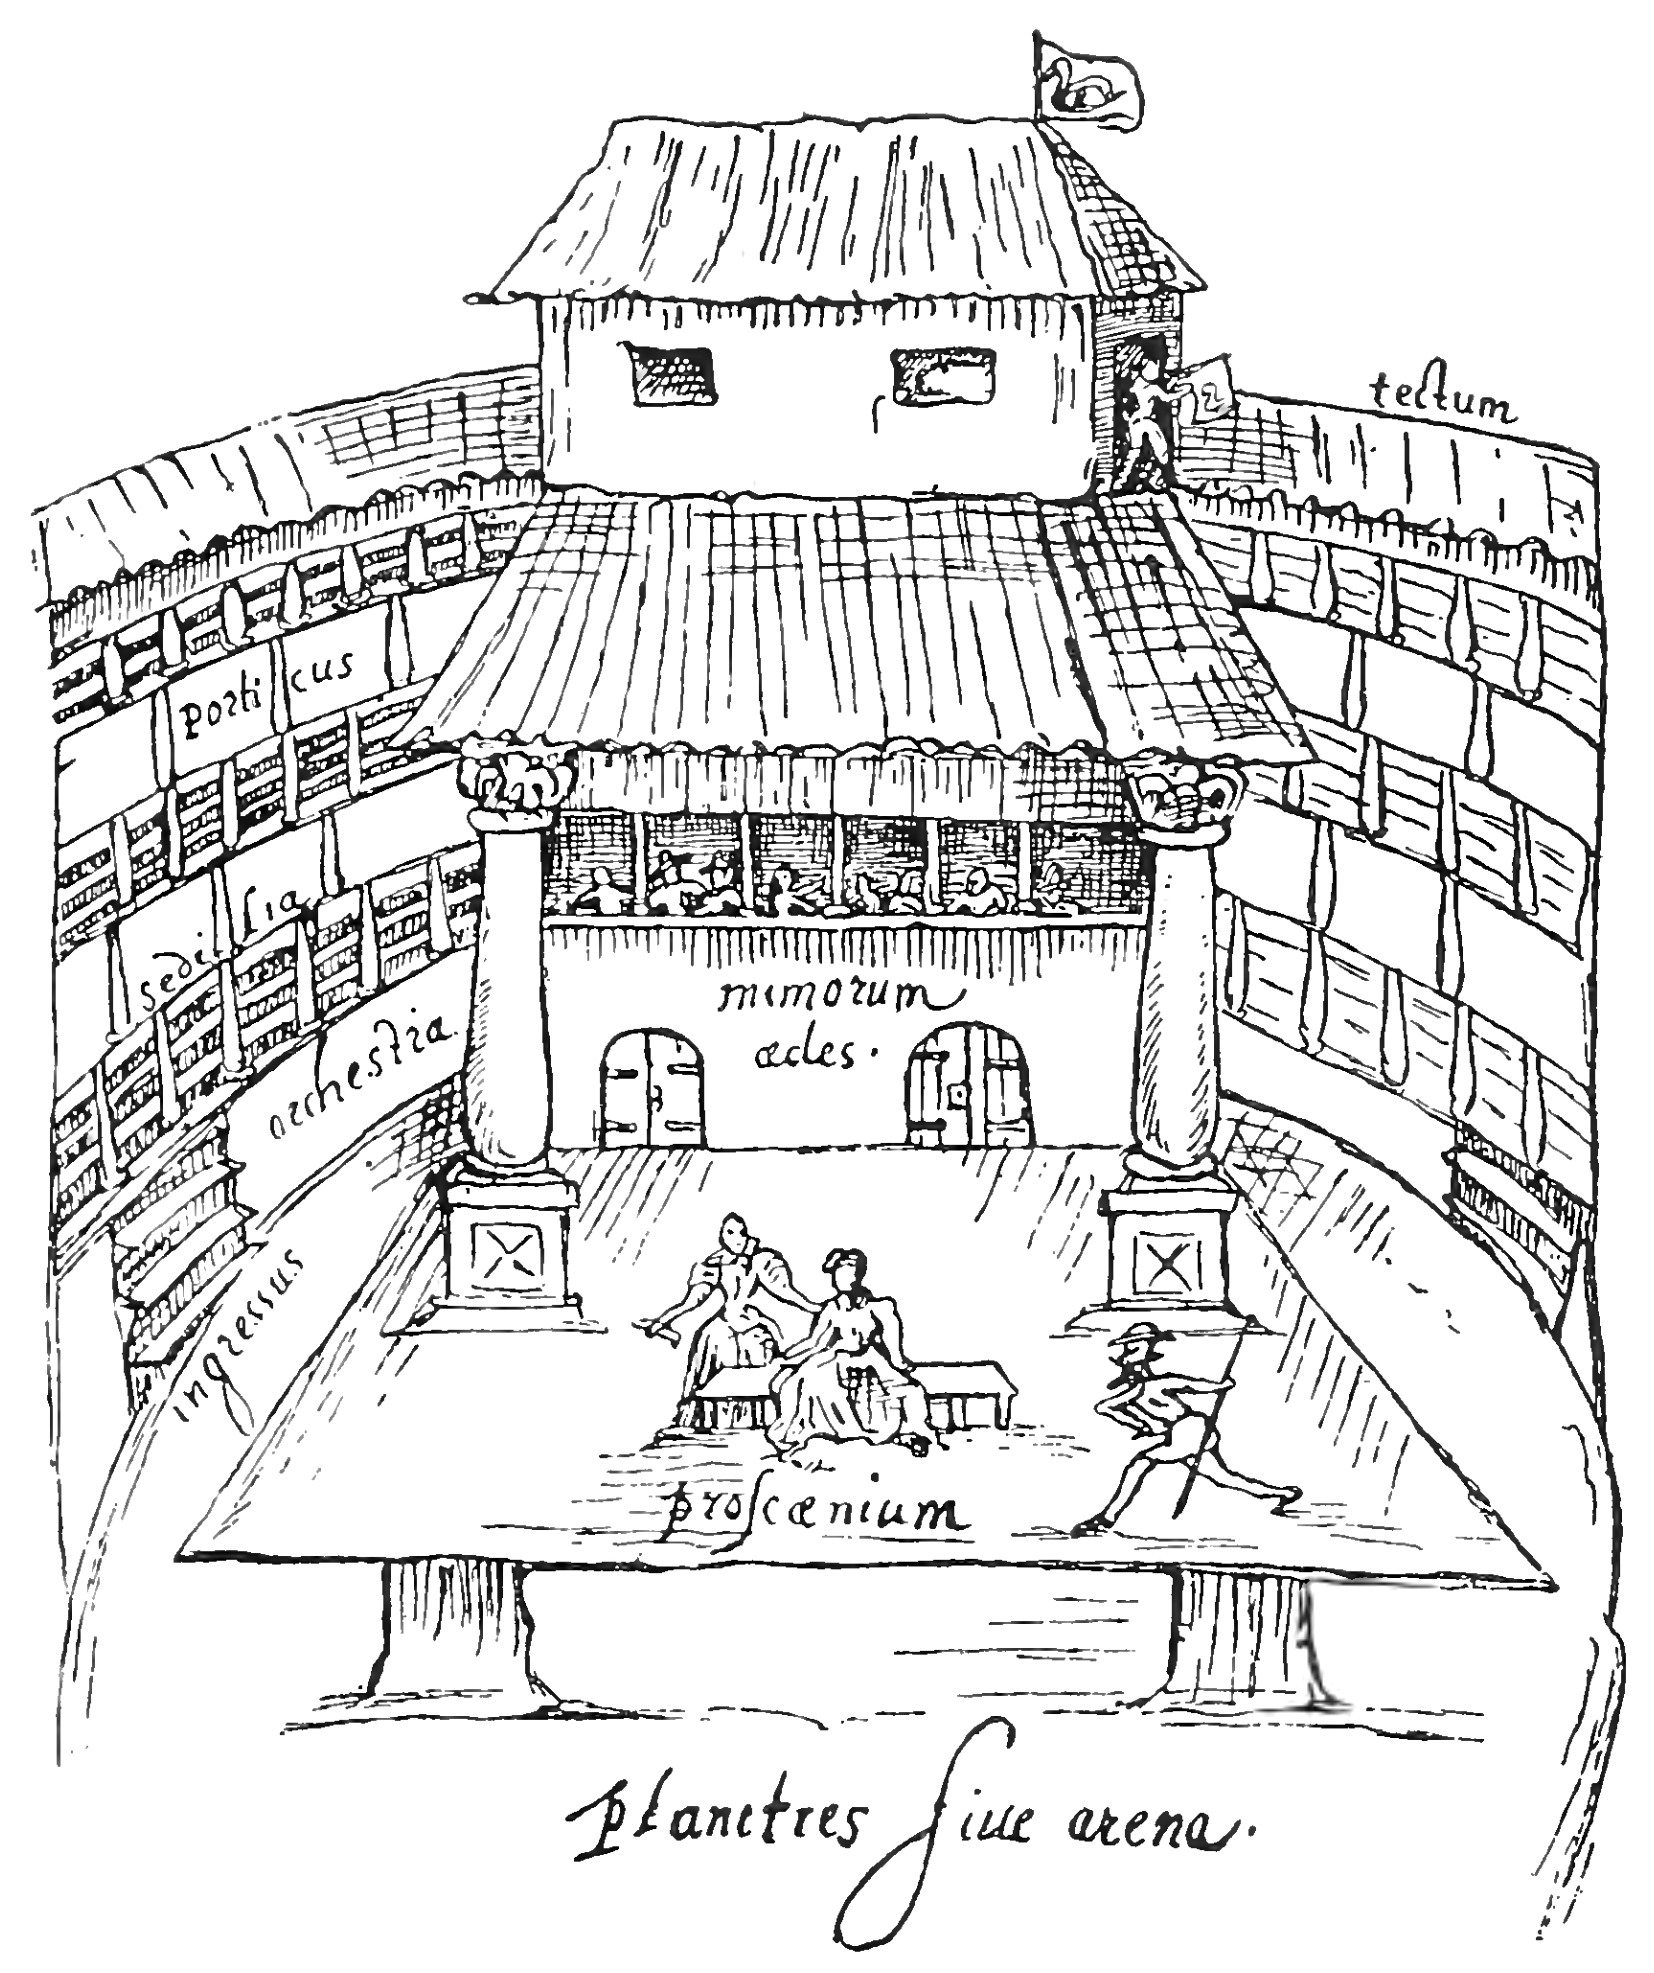 Image of the Swan Theatre in Shakespeare's London.